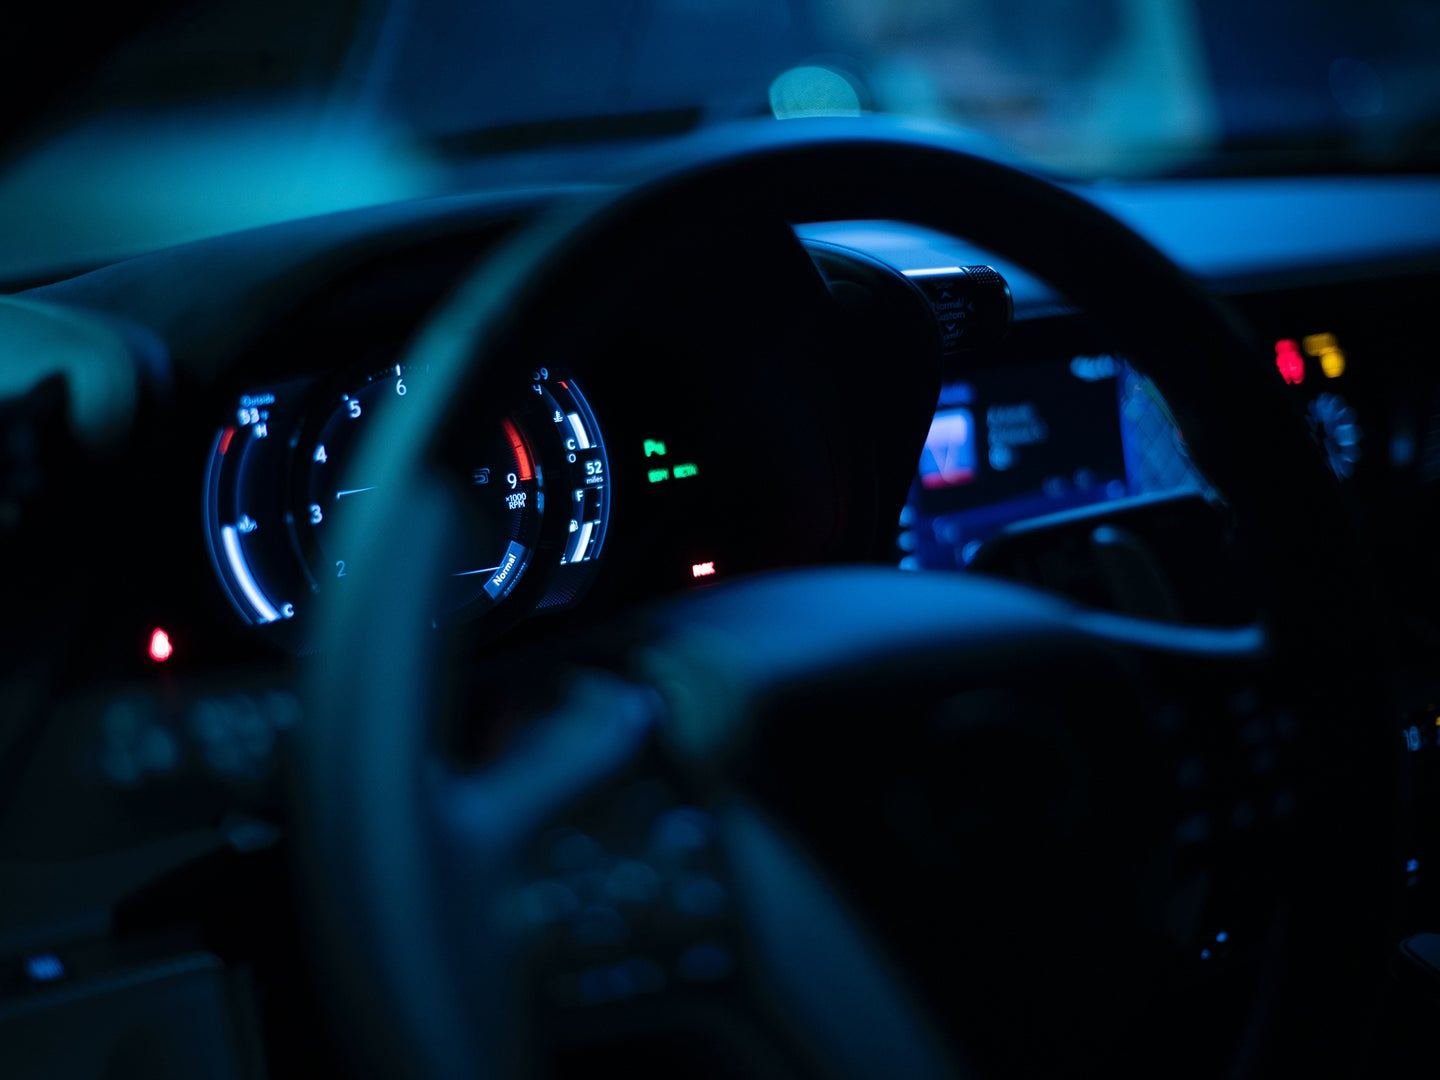 The steering wheel and dashboard of a car at night.